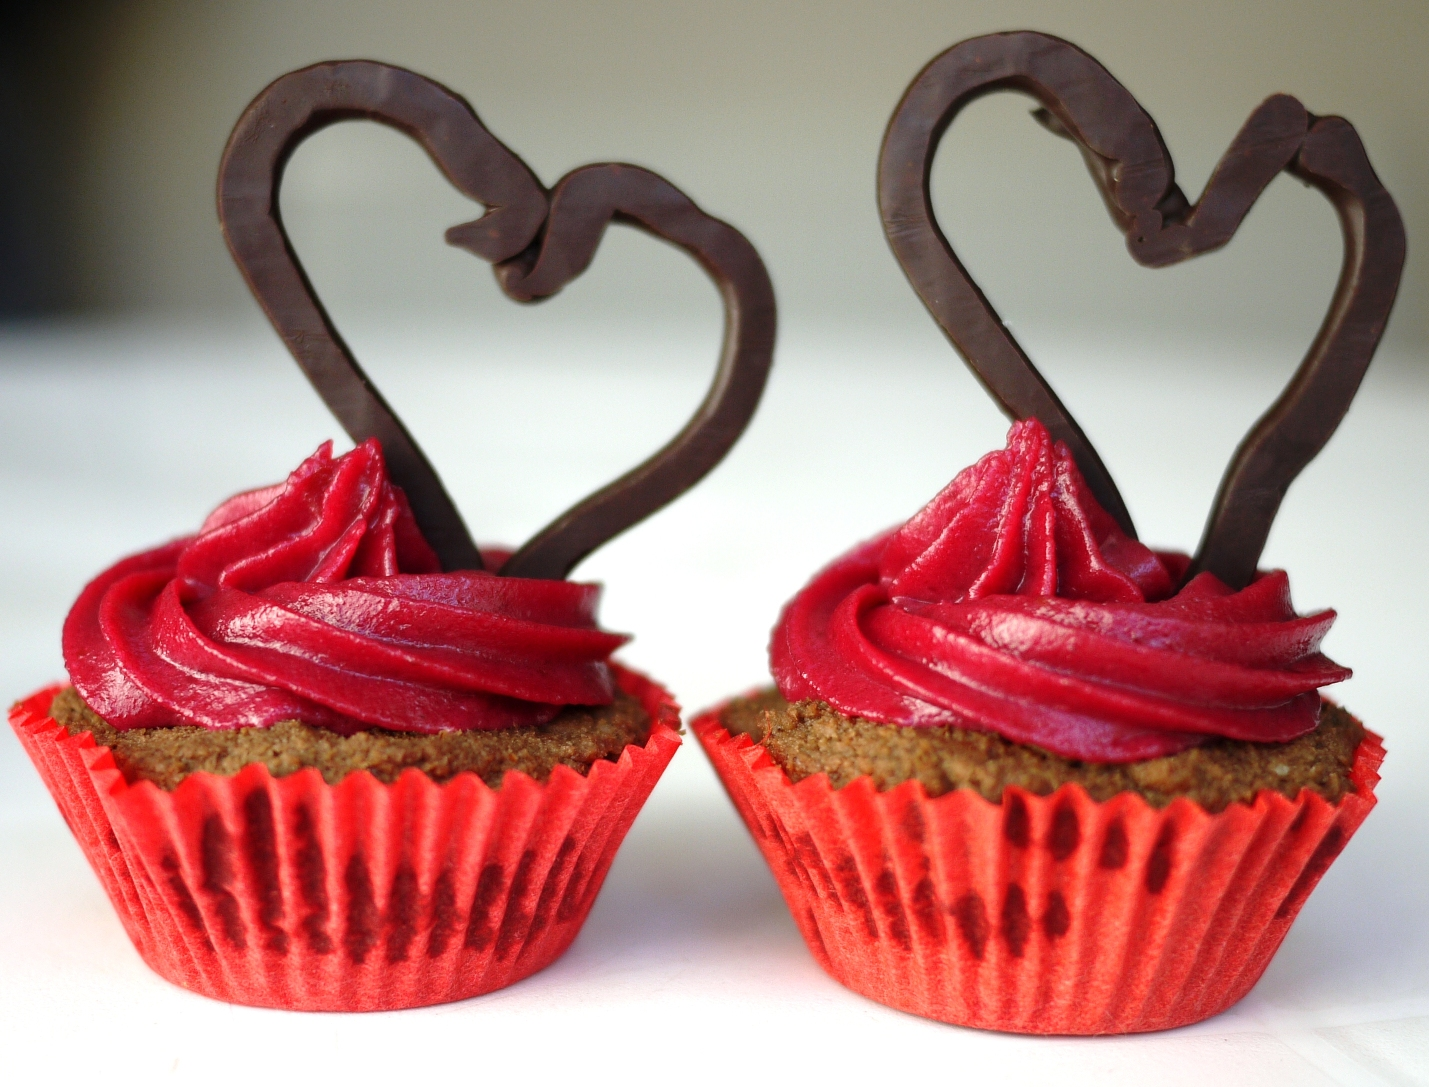 Chocolate Cupcakes for Valentines Day - Better Raw